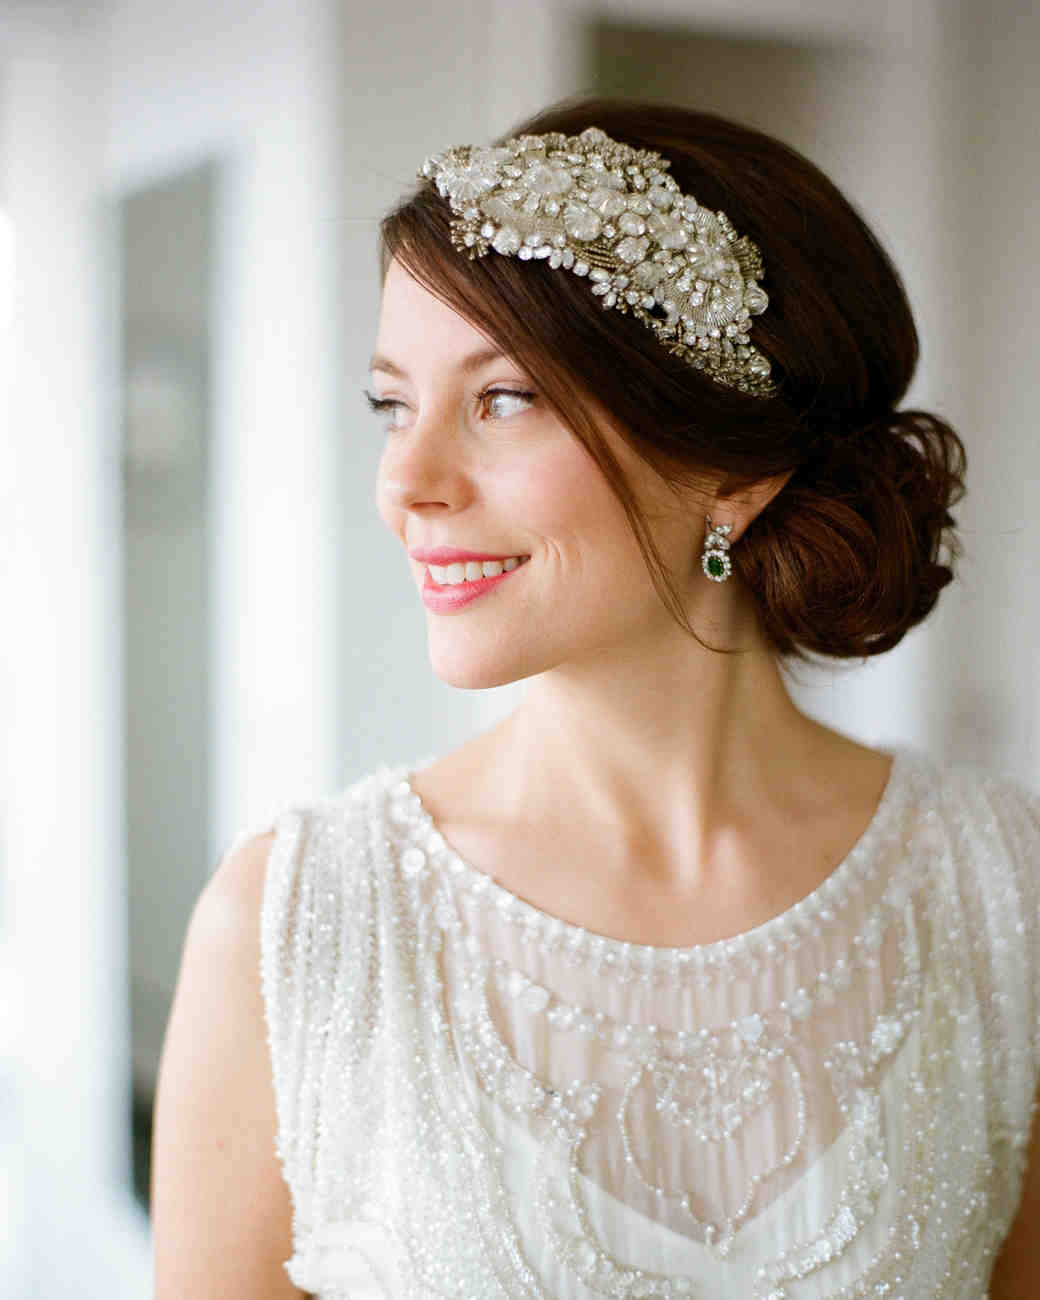 Wedding Hairstyle: 29 Cool Wedding Hairstyles For The Modern Bride